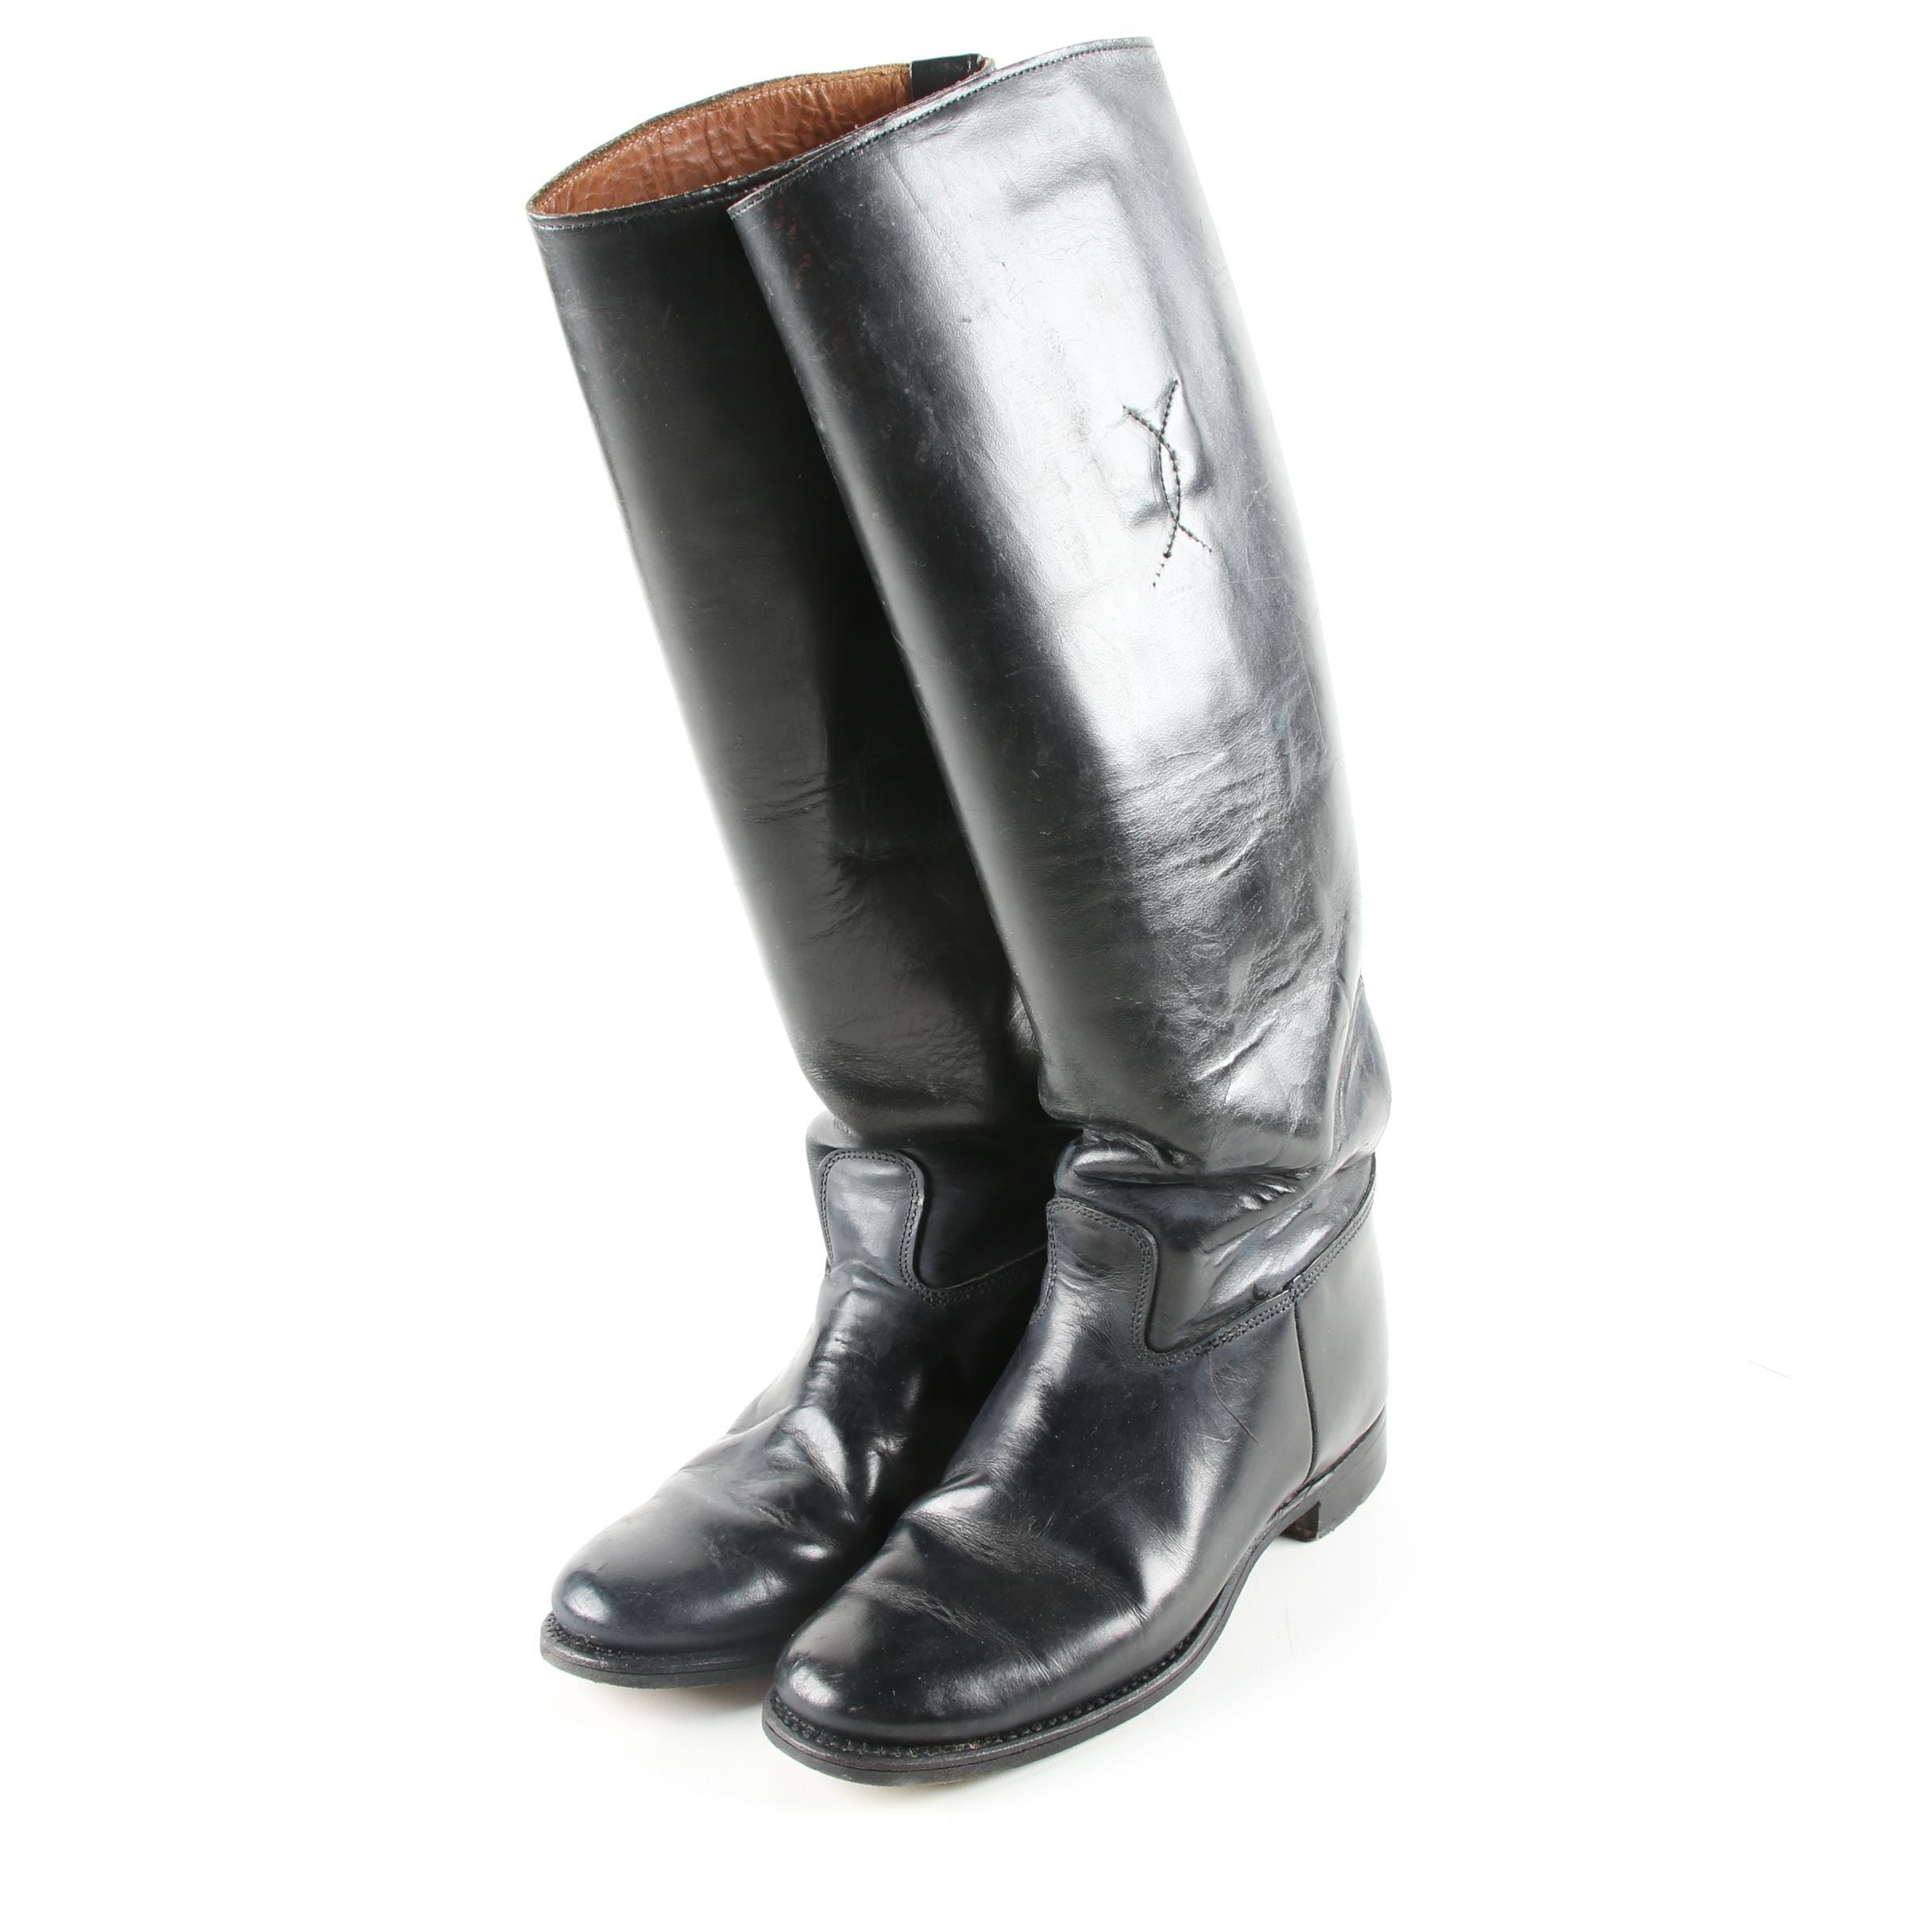 Women's Black Leather Riding Style Boots